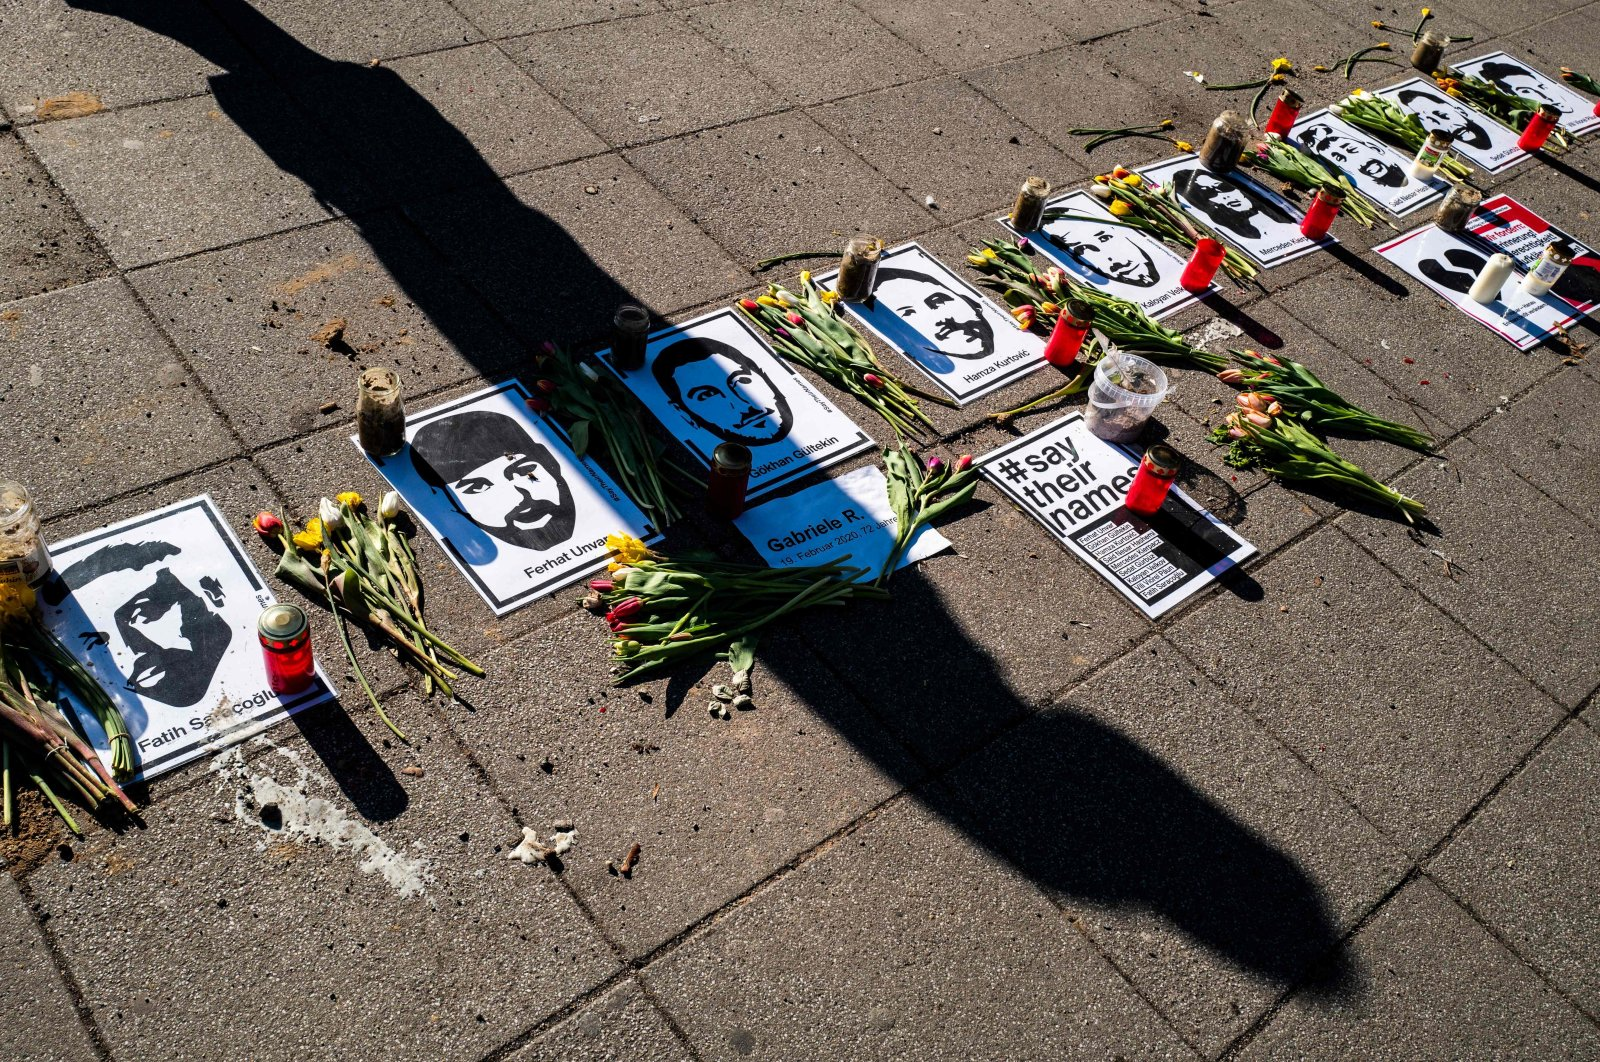 A passer-by casts a shadow on a makeshift memorial commemorating the nine victims of the deadly 2020 Hanau terrorist attack in front of a shopping mall in Berlin, Germany, March 2, 2021. (AFP Photo)